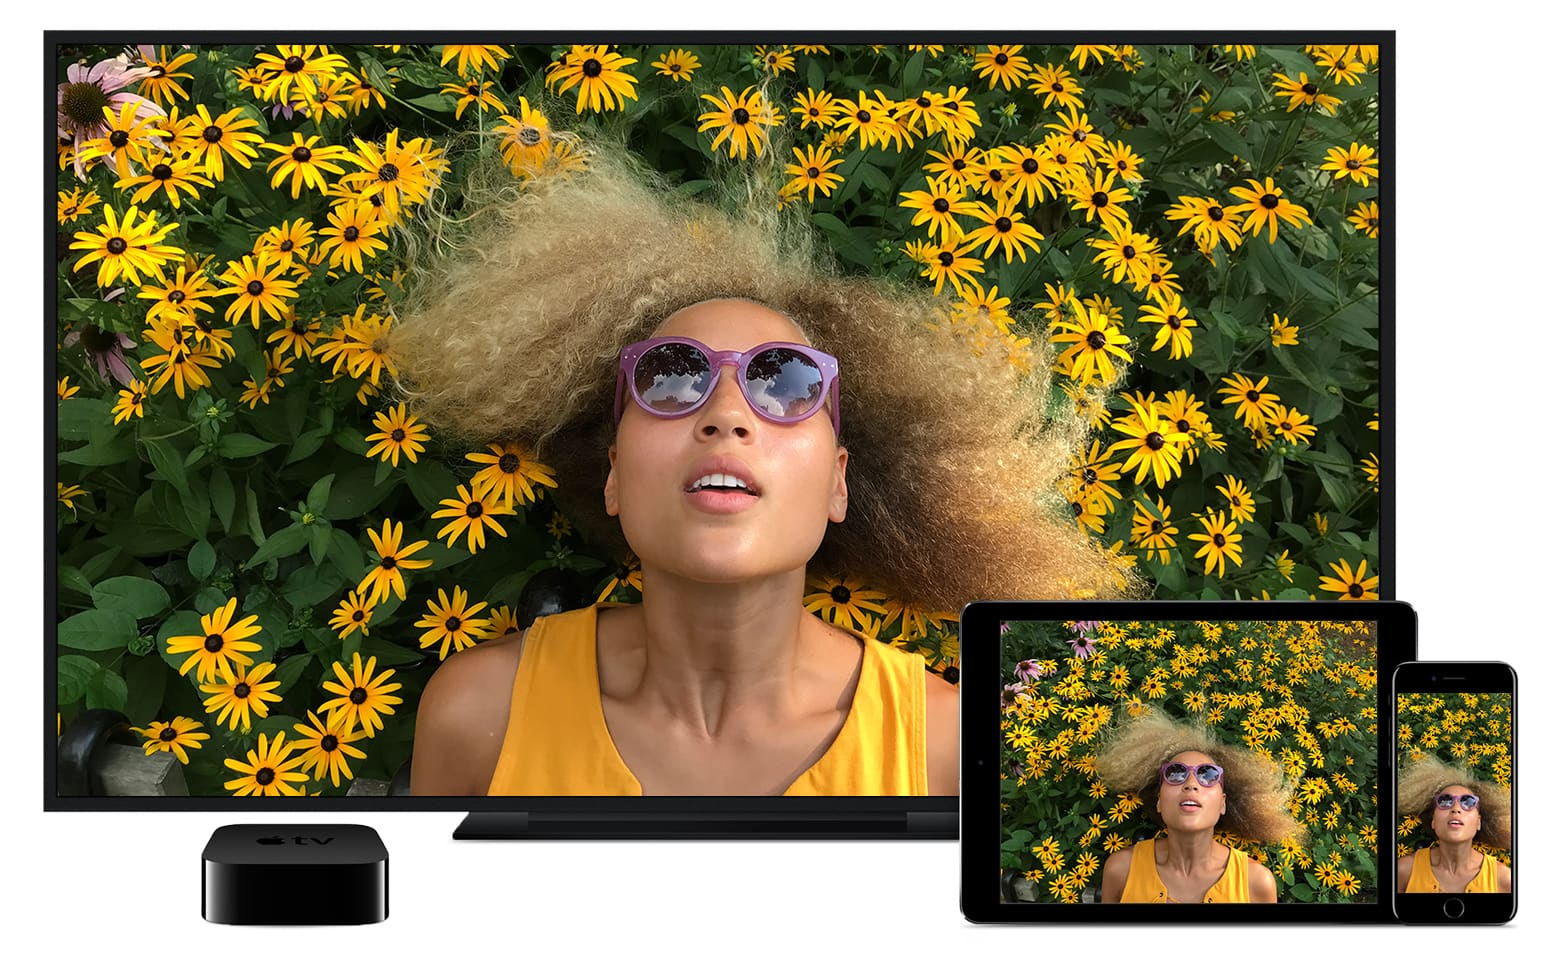 How to use Apple Airplay to stream video to Apple TV - VIXY Video